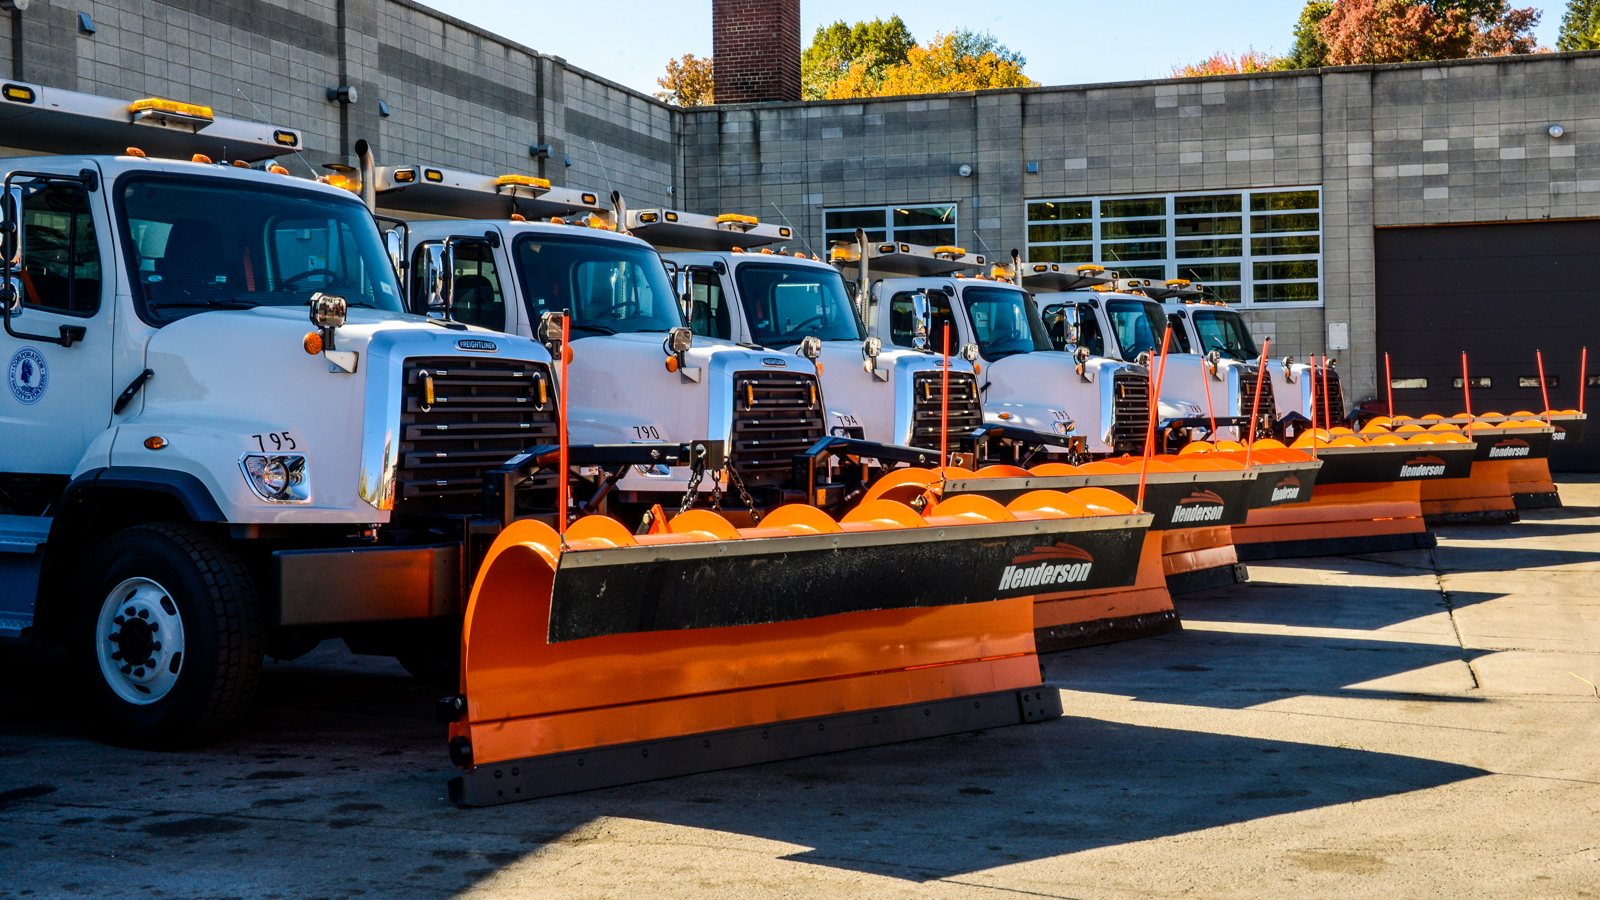 Fleet of snow plow trucks